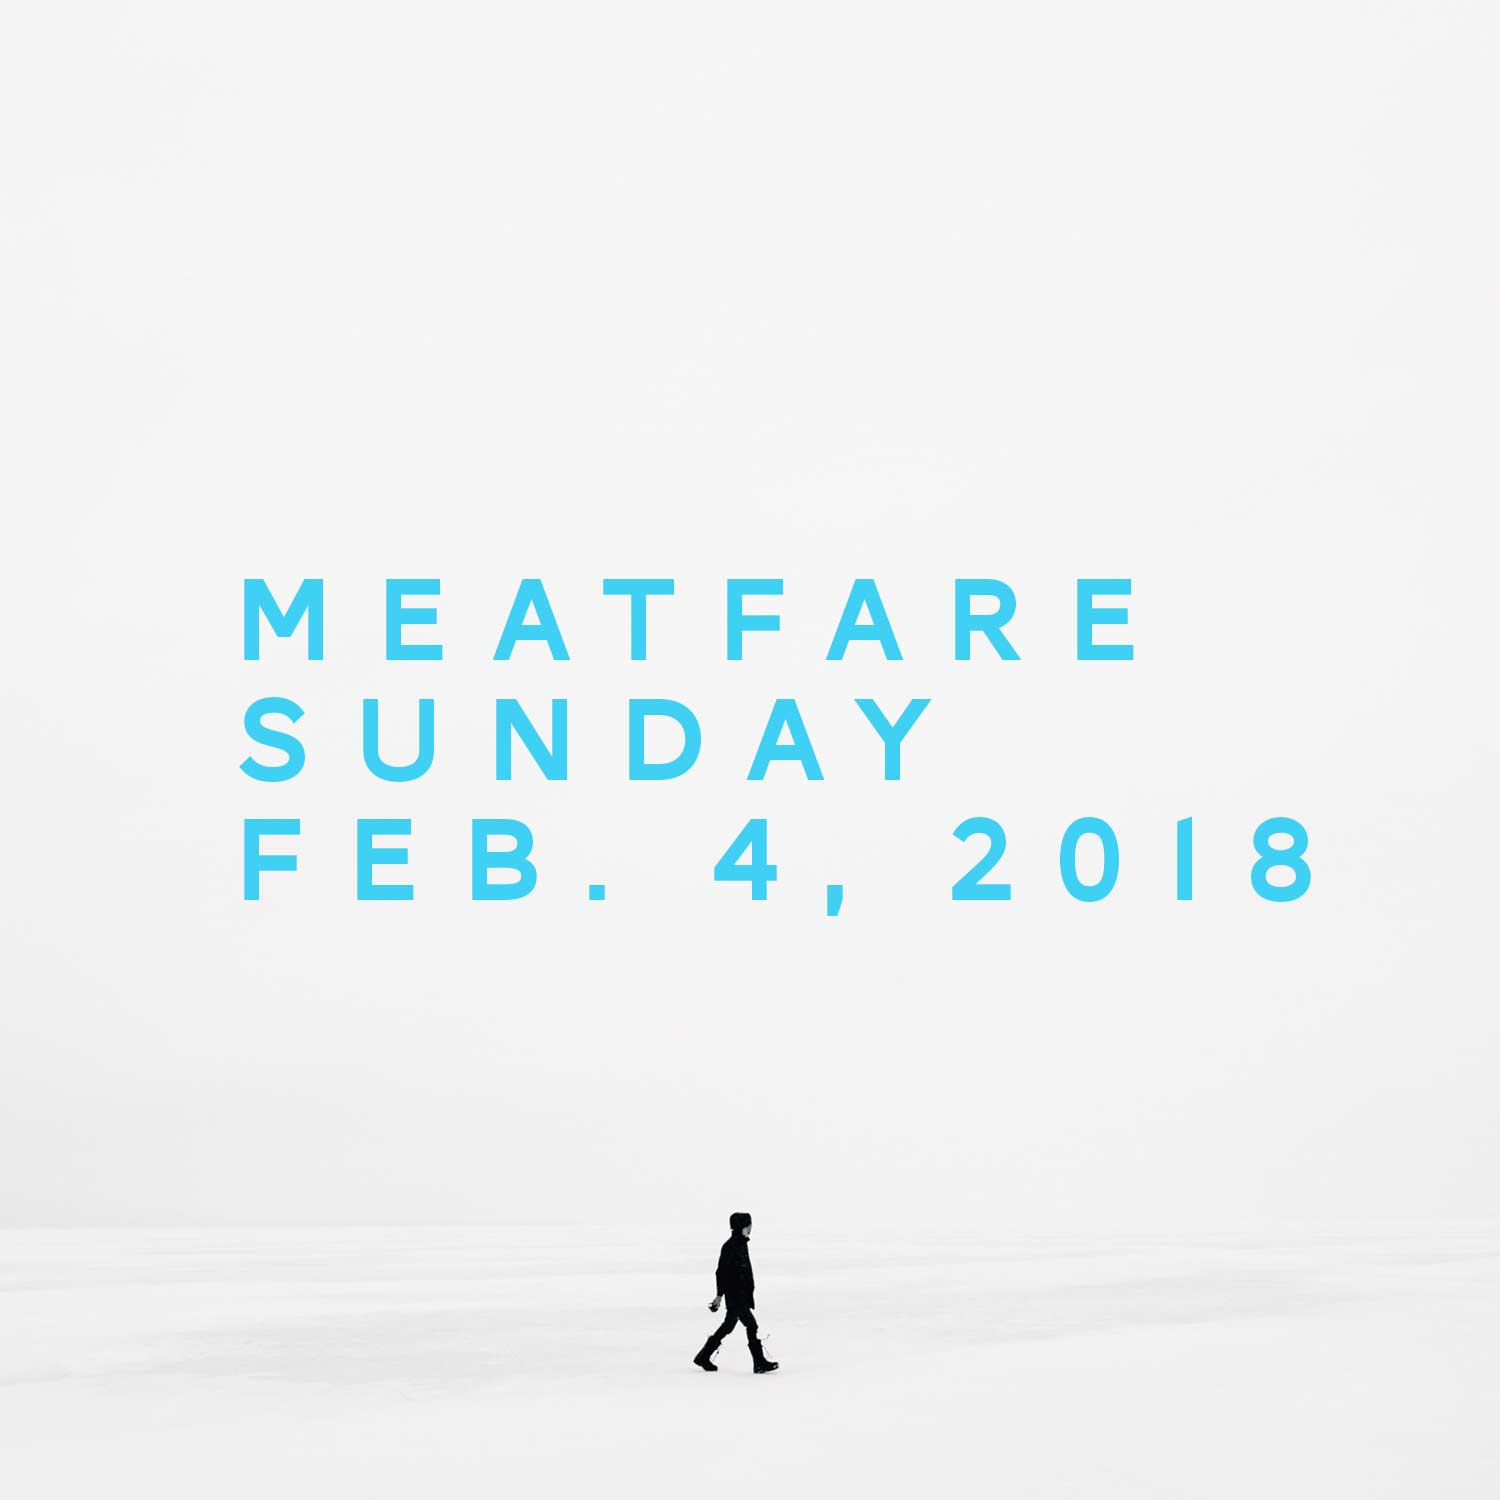 meatfare-lent.jpg